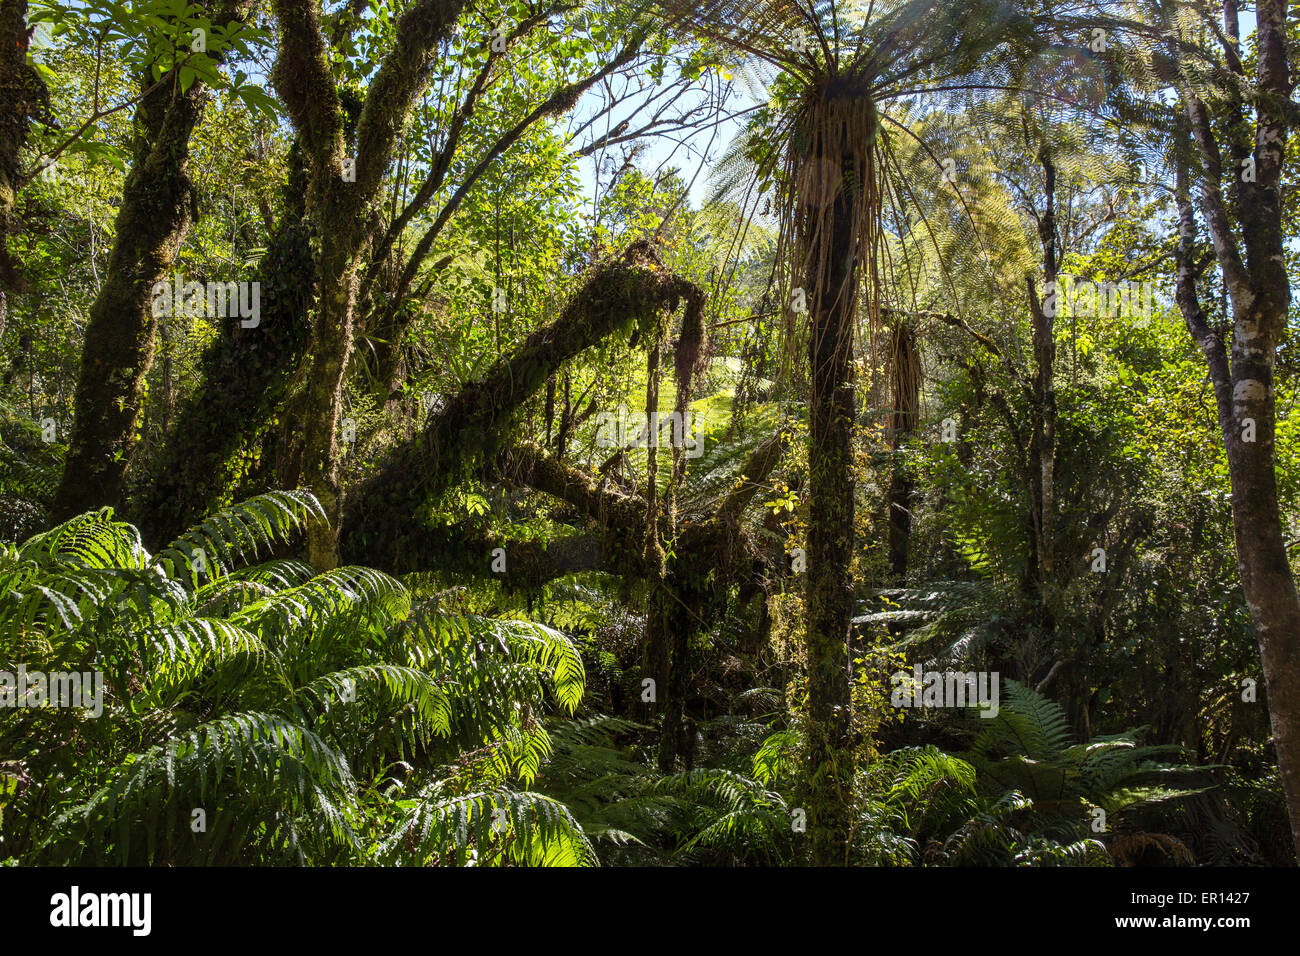 Temperate rain forest of New Zealand in the Southern Alps with rich growth of ferns and tree ferns amongst evergreen - Stock Image